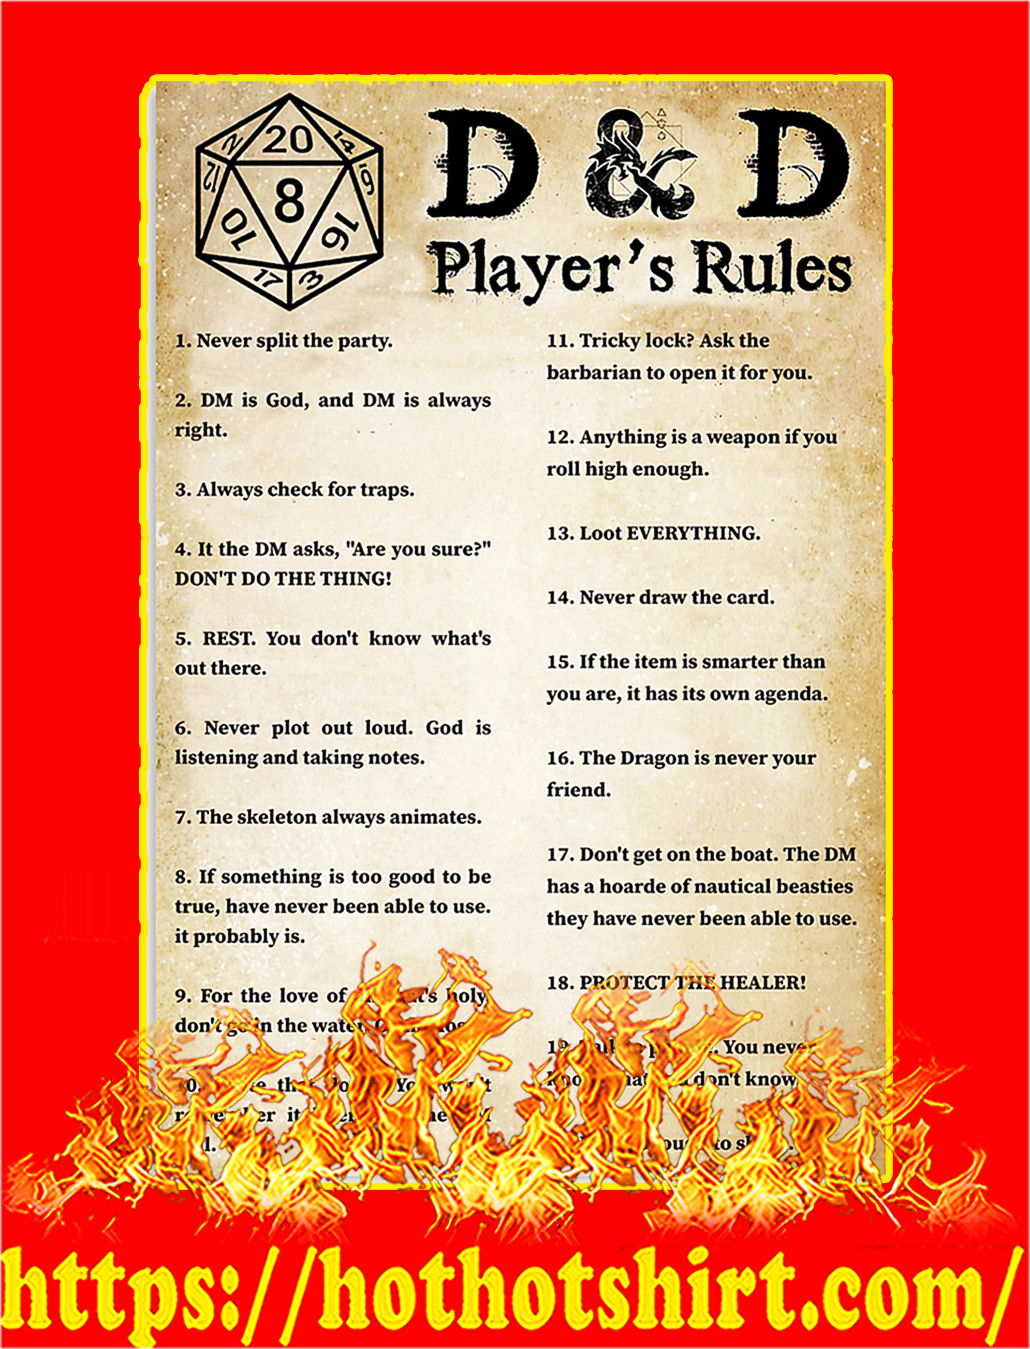 D&D player's rules poster - A1